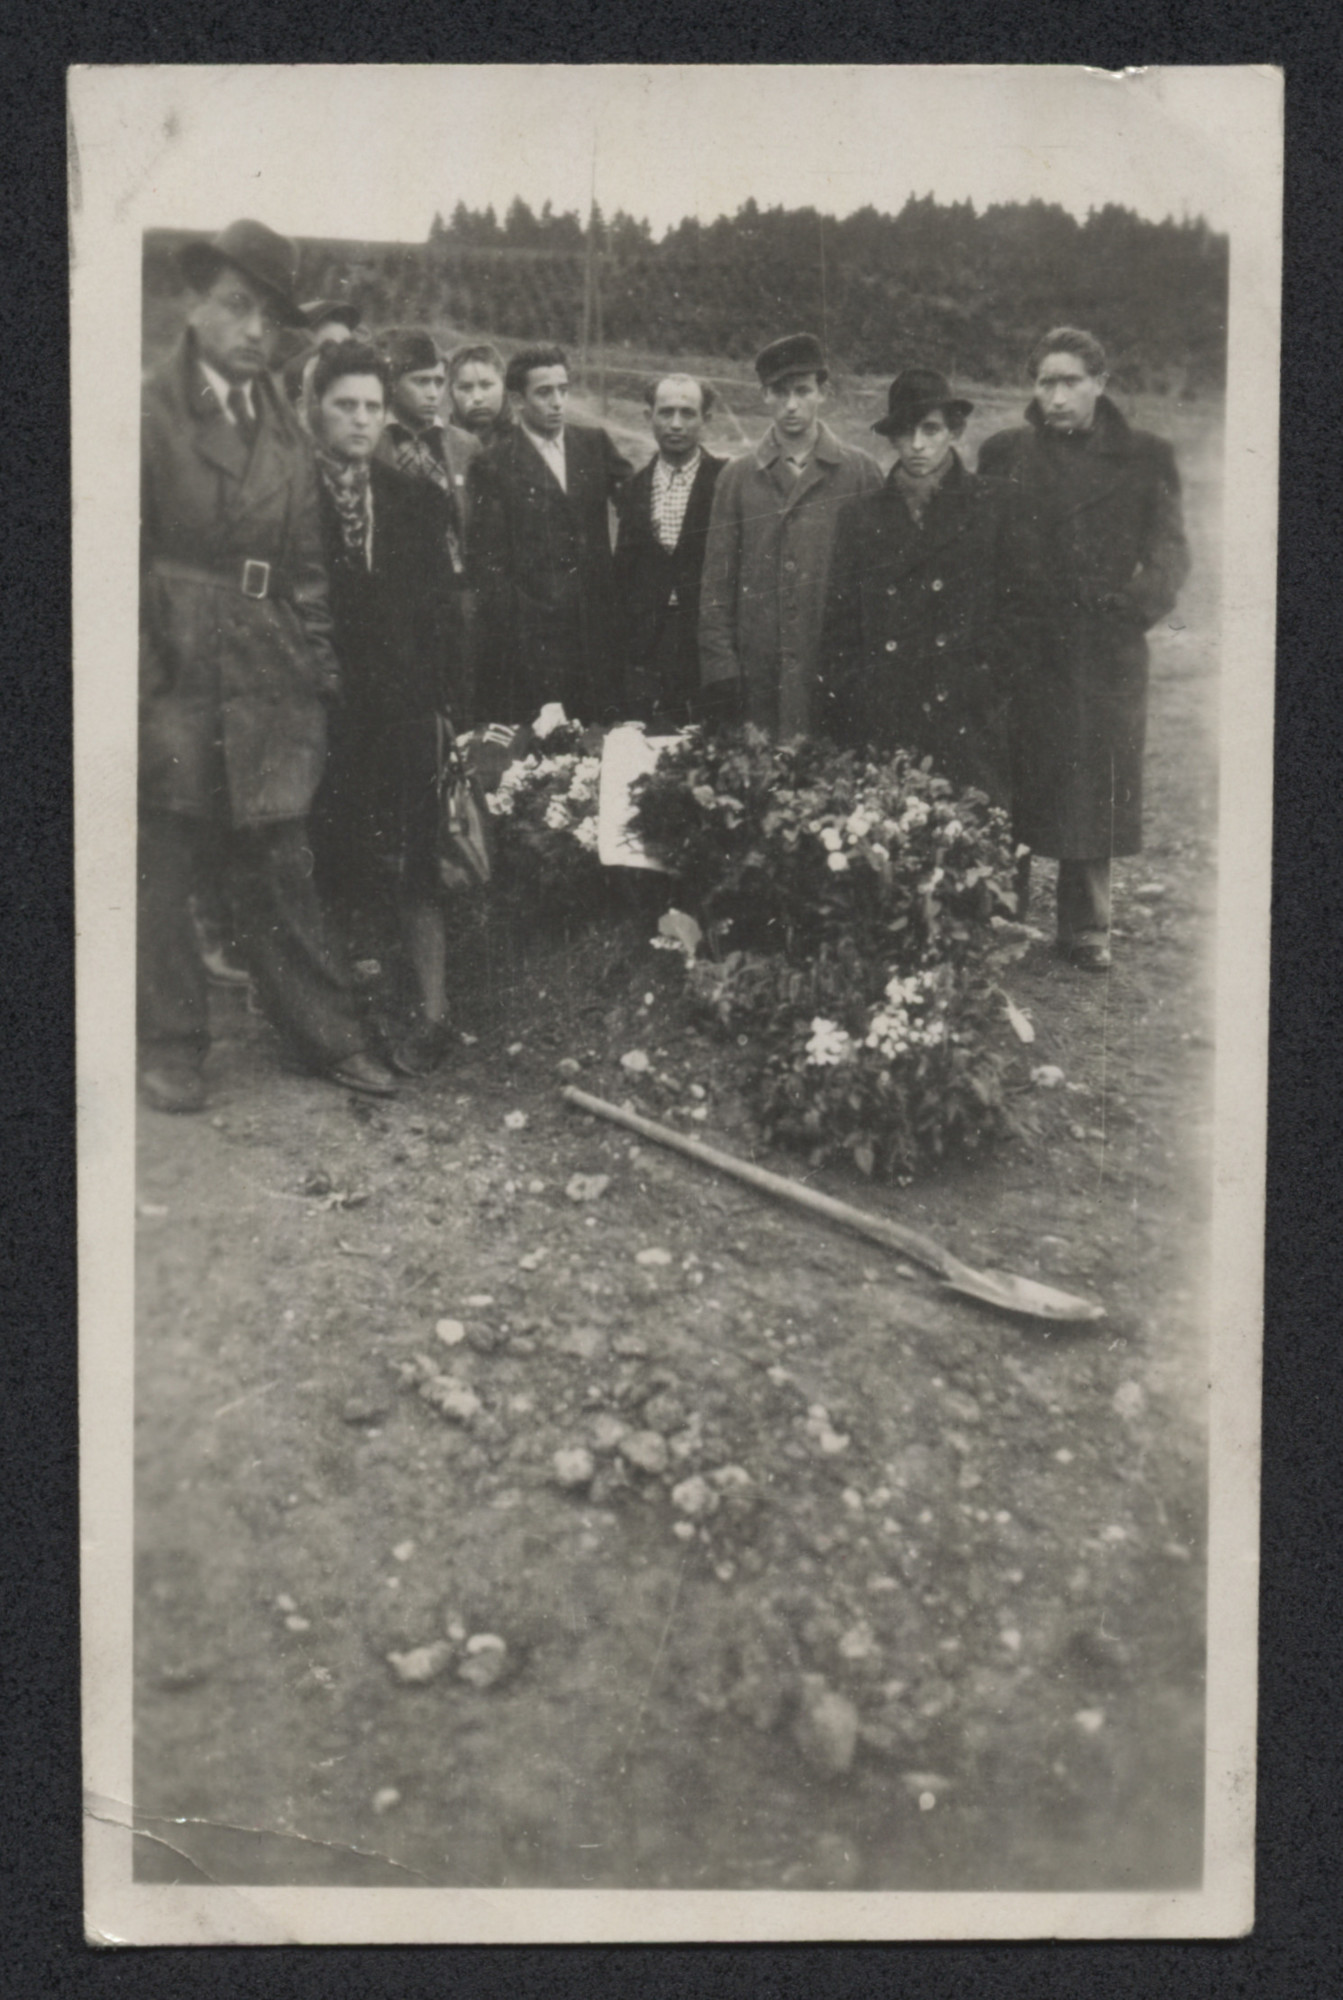 Diaplaced persons lay a wreath at the burial spot of Jewish victims of the Holocaust during a postwar burial ceremony.